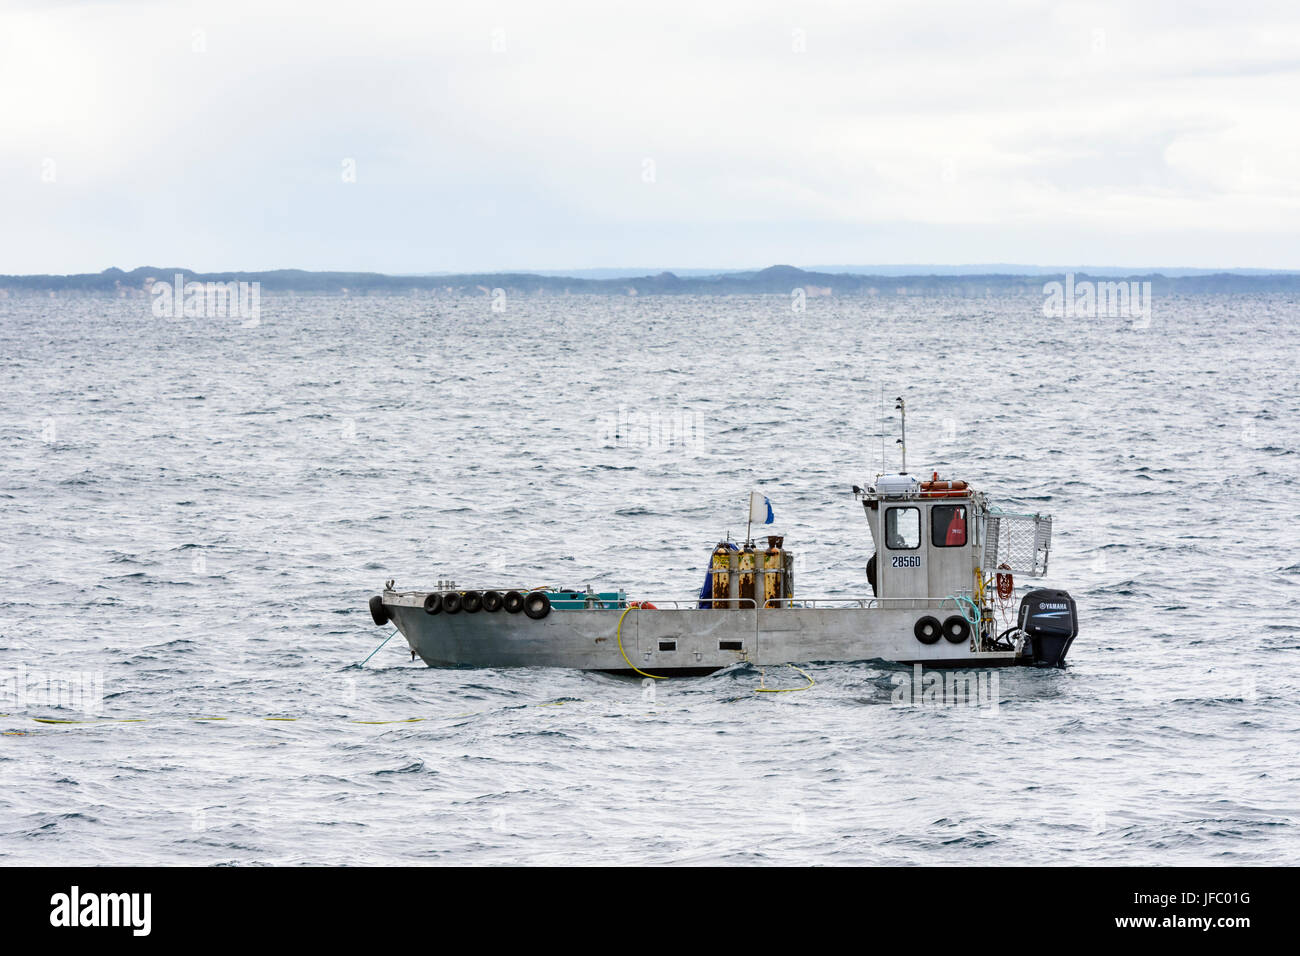 A small dive vessel used in the wild farming of Abalone shellfish in Flinders Bay, off the coast of Augusta, Western - Stock Image